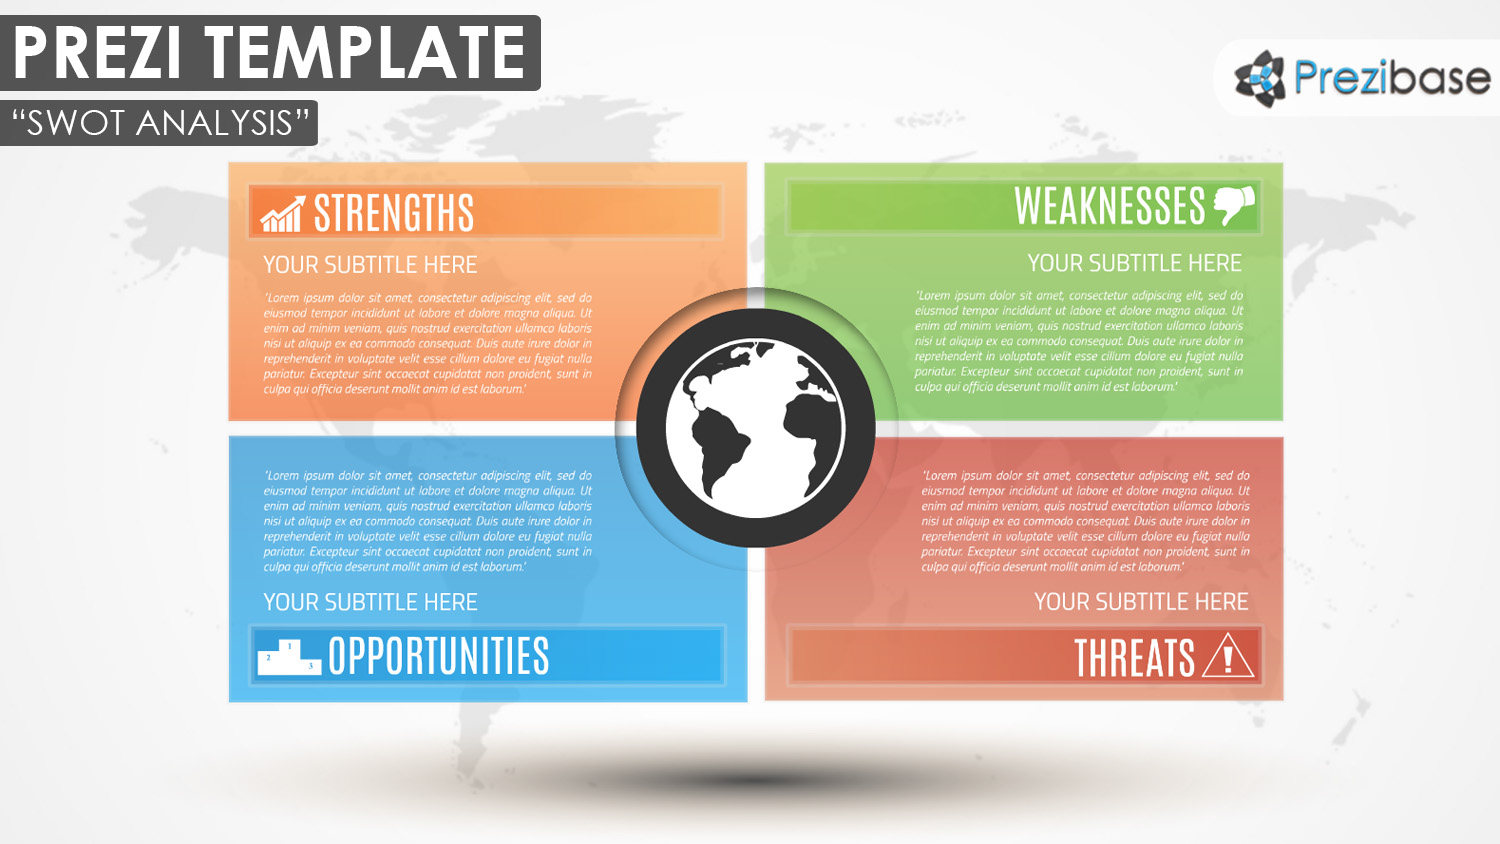 SWOT analysis company business prezi template